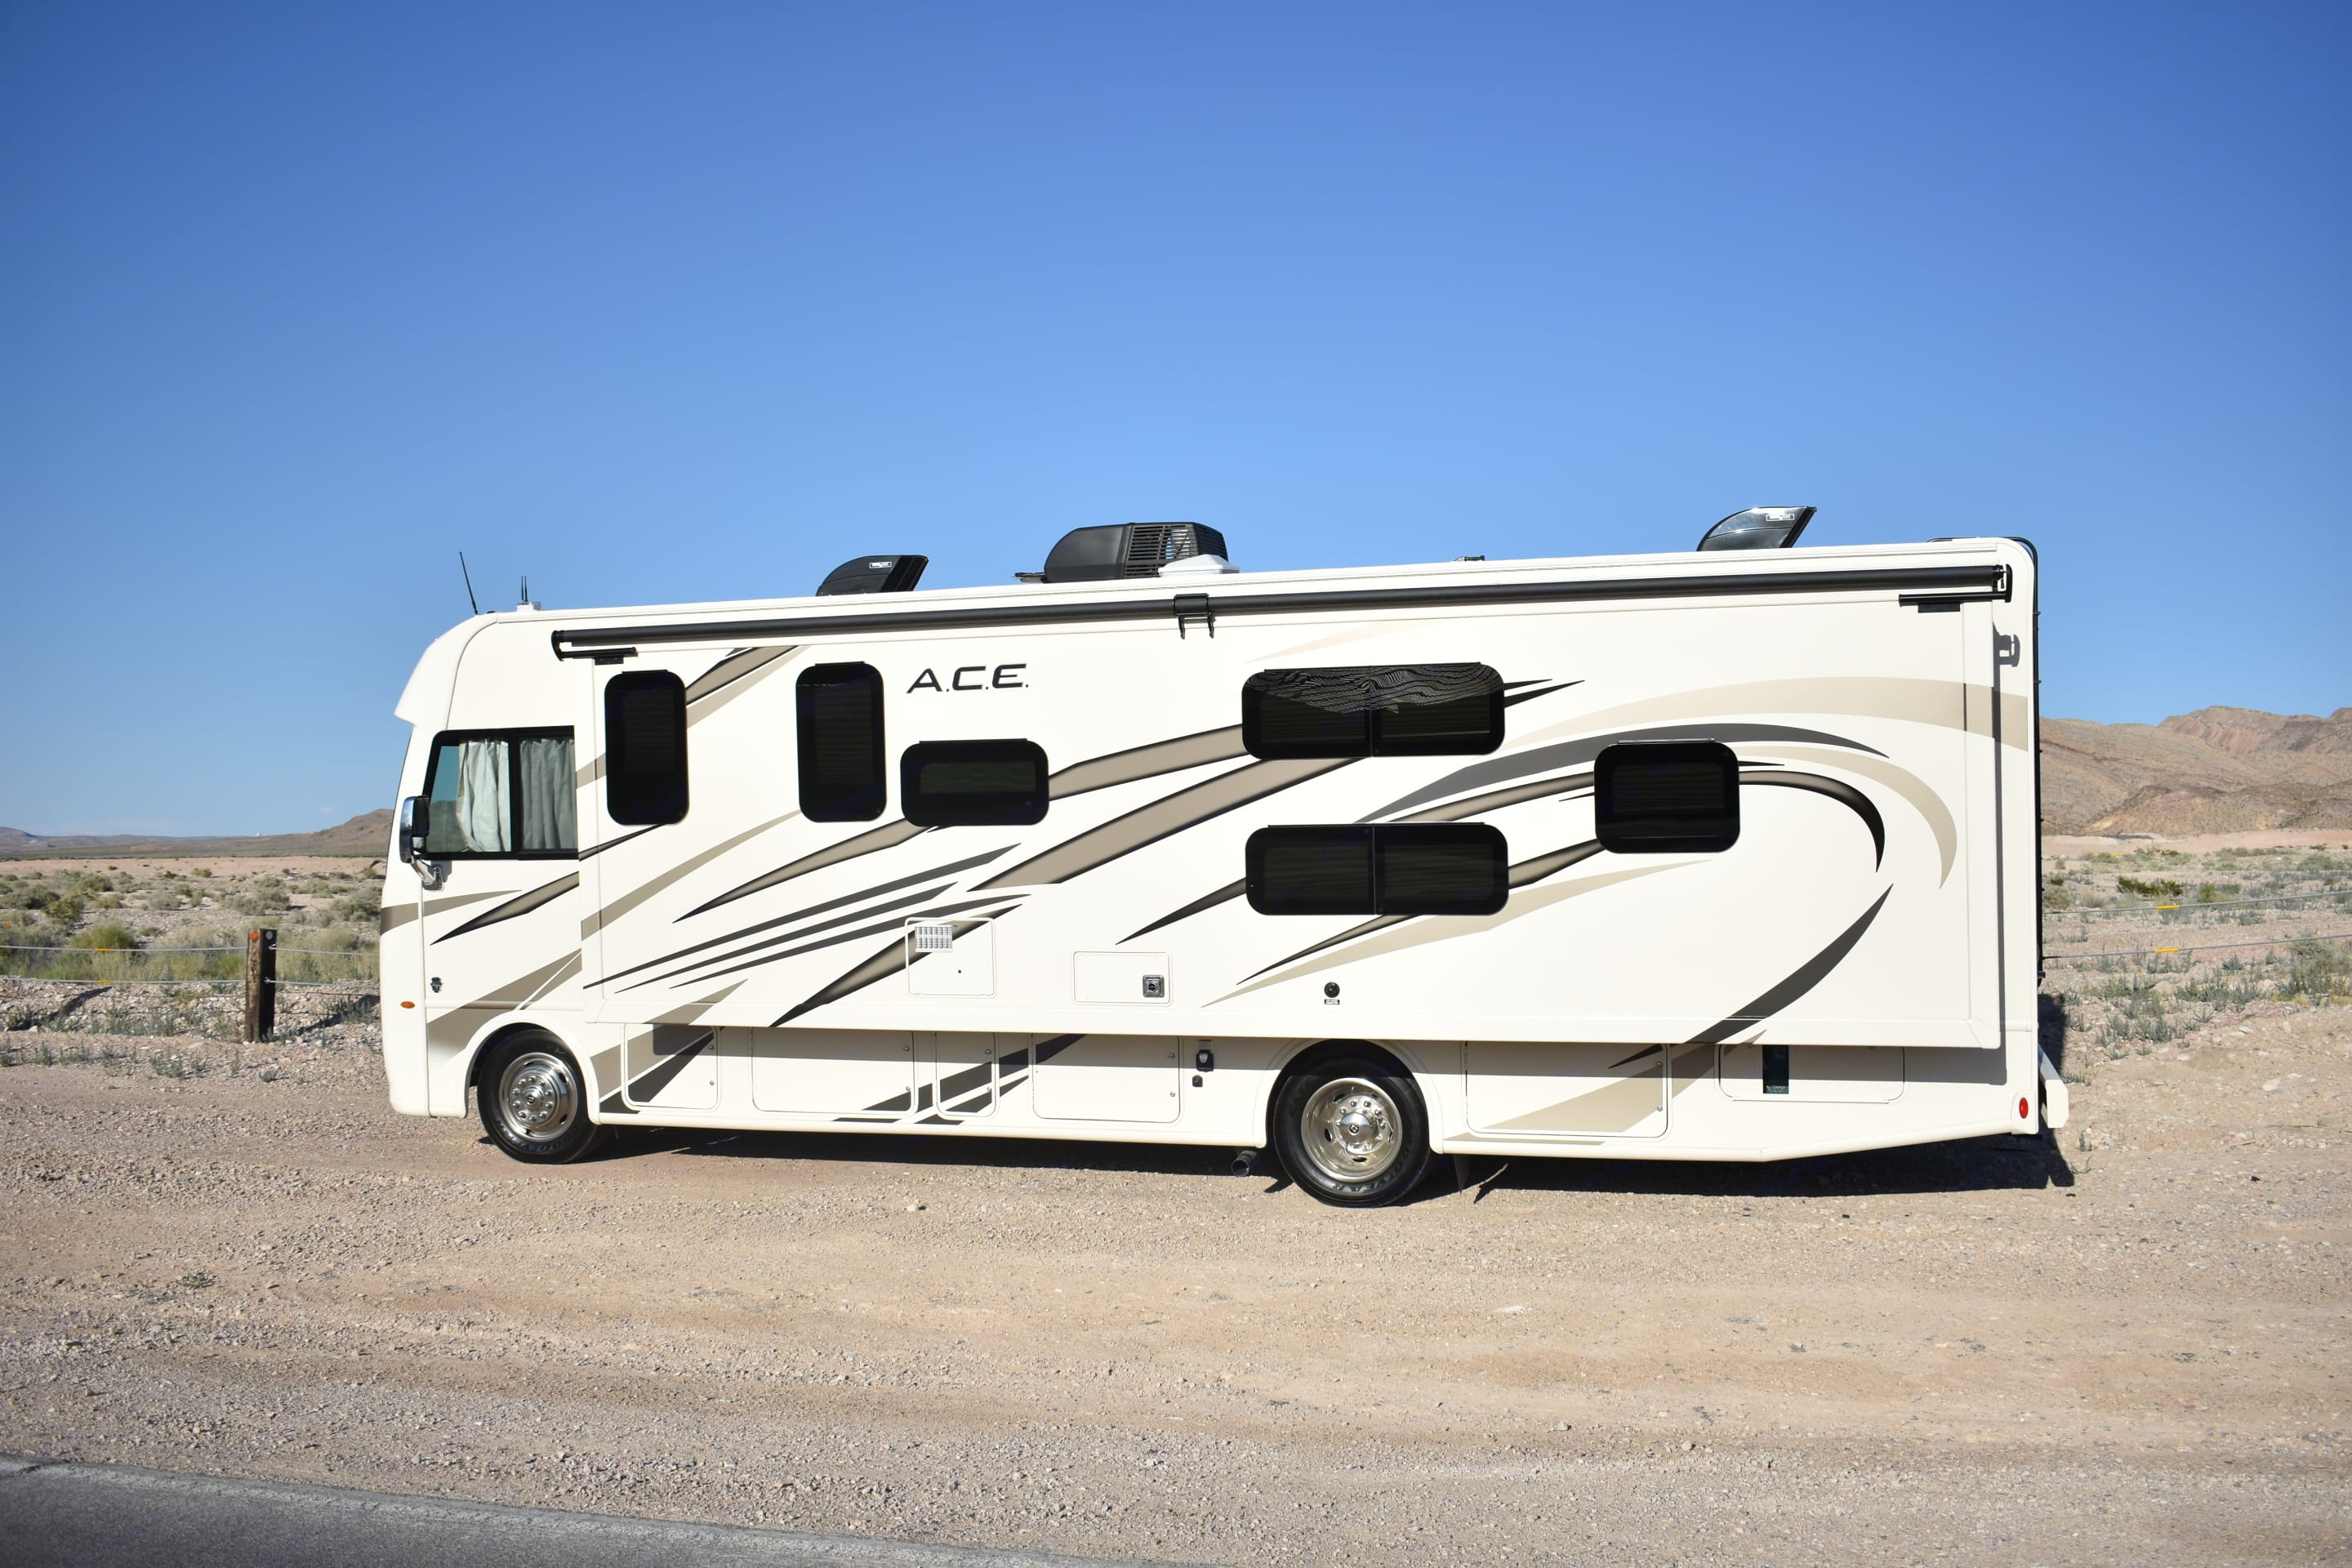 Lots of Storage with a 19 ft Awning. Thor Motor Coach A.C.E 2019